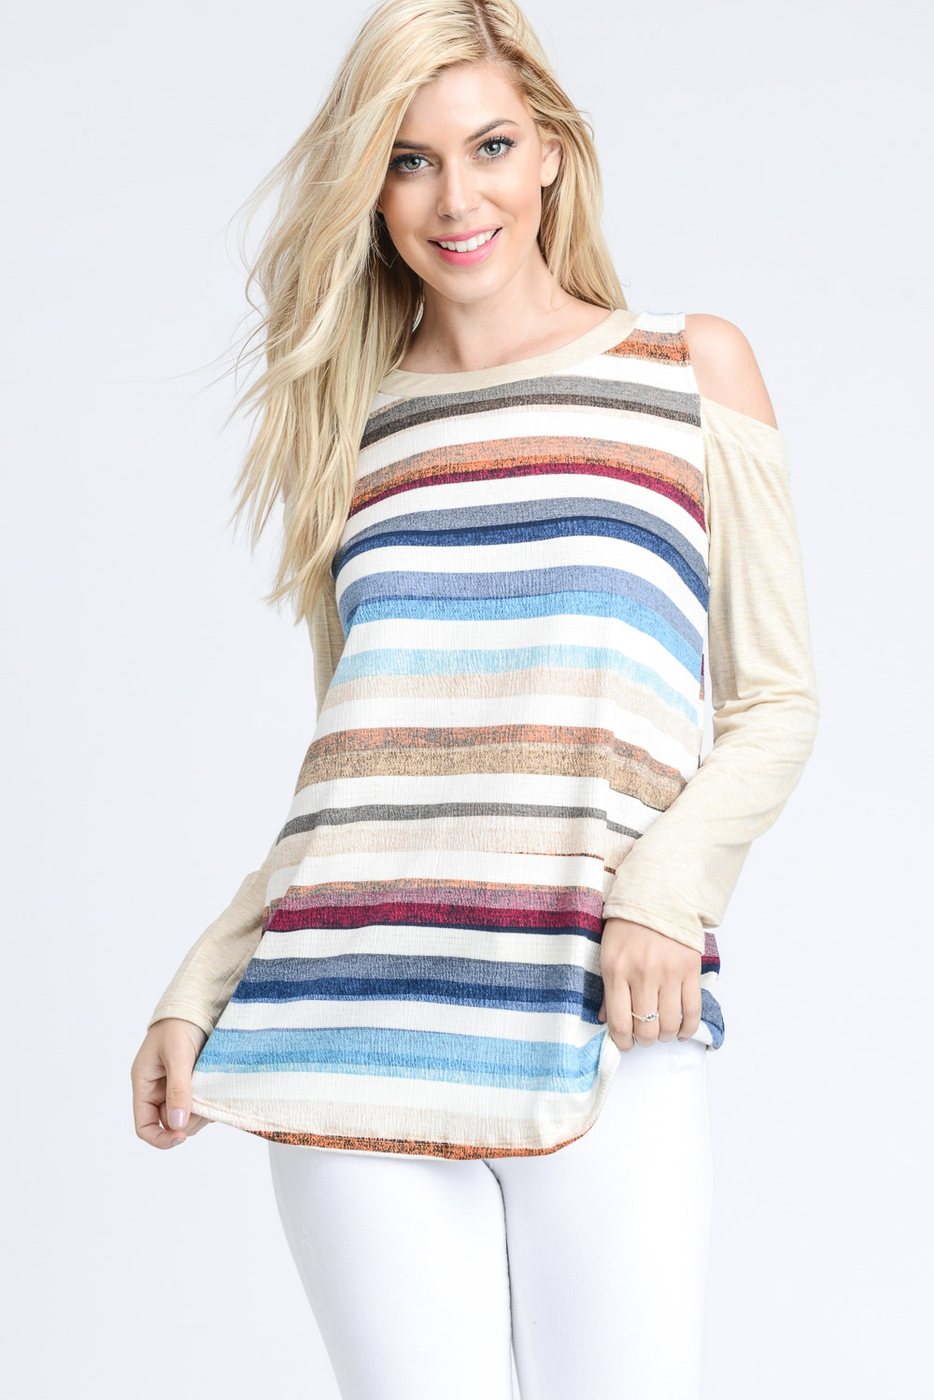 MULTI STRIPE OPEN SHOULDER KNIT TOP - orangeshine.com